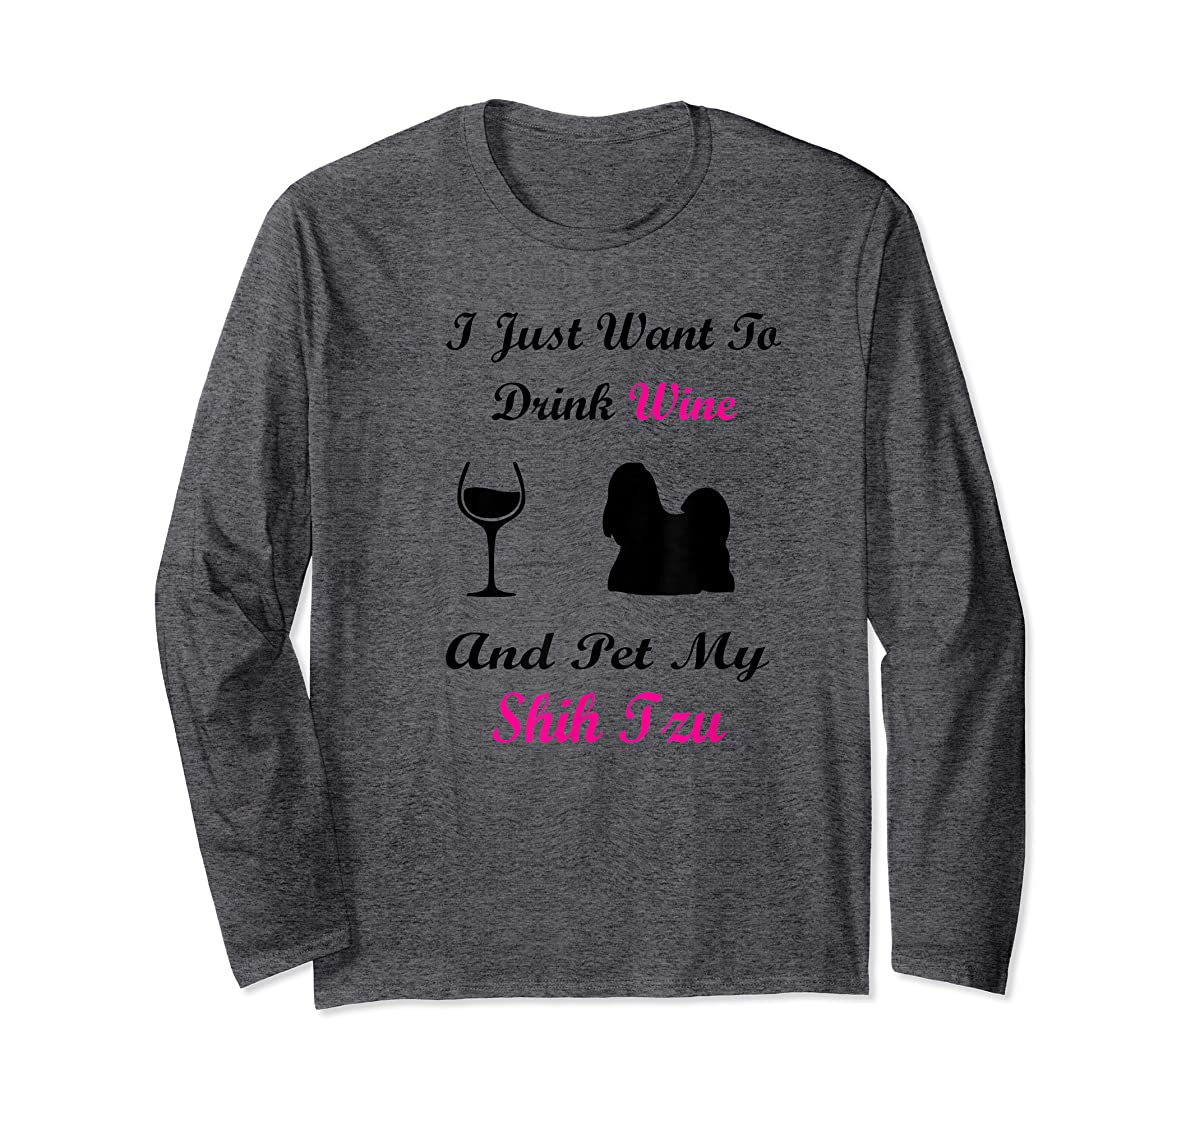 I Just Want To Drink Wine and Pet My Shih Tzu Shirt Dog Love-Long Sleeve-Dark Heather